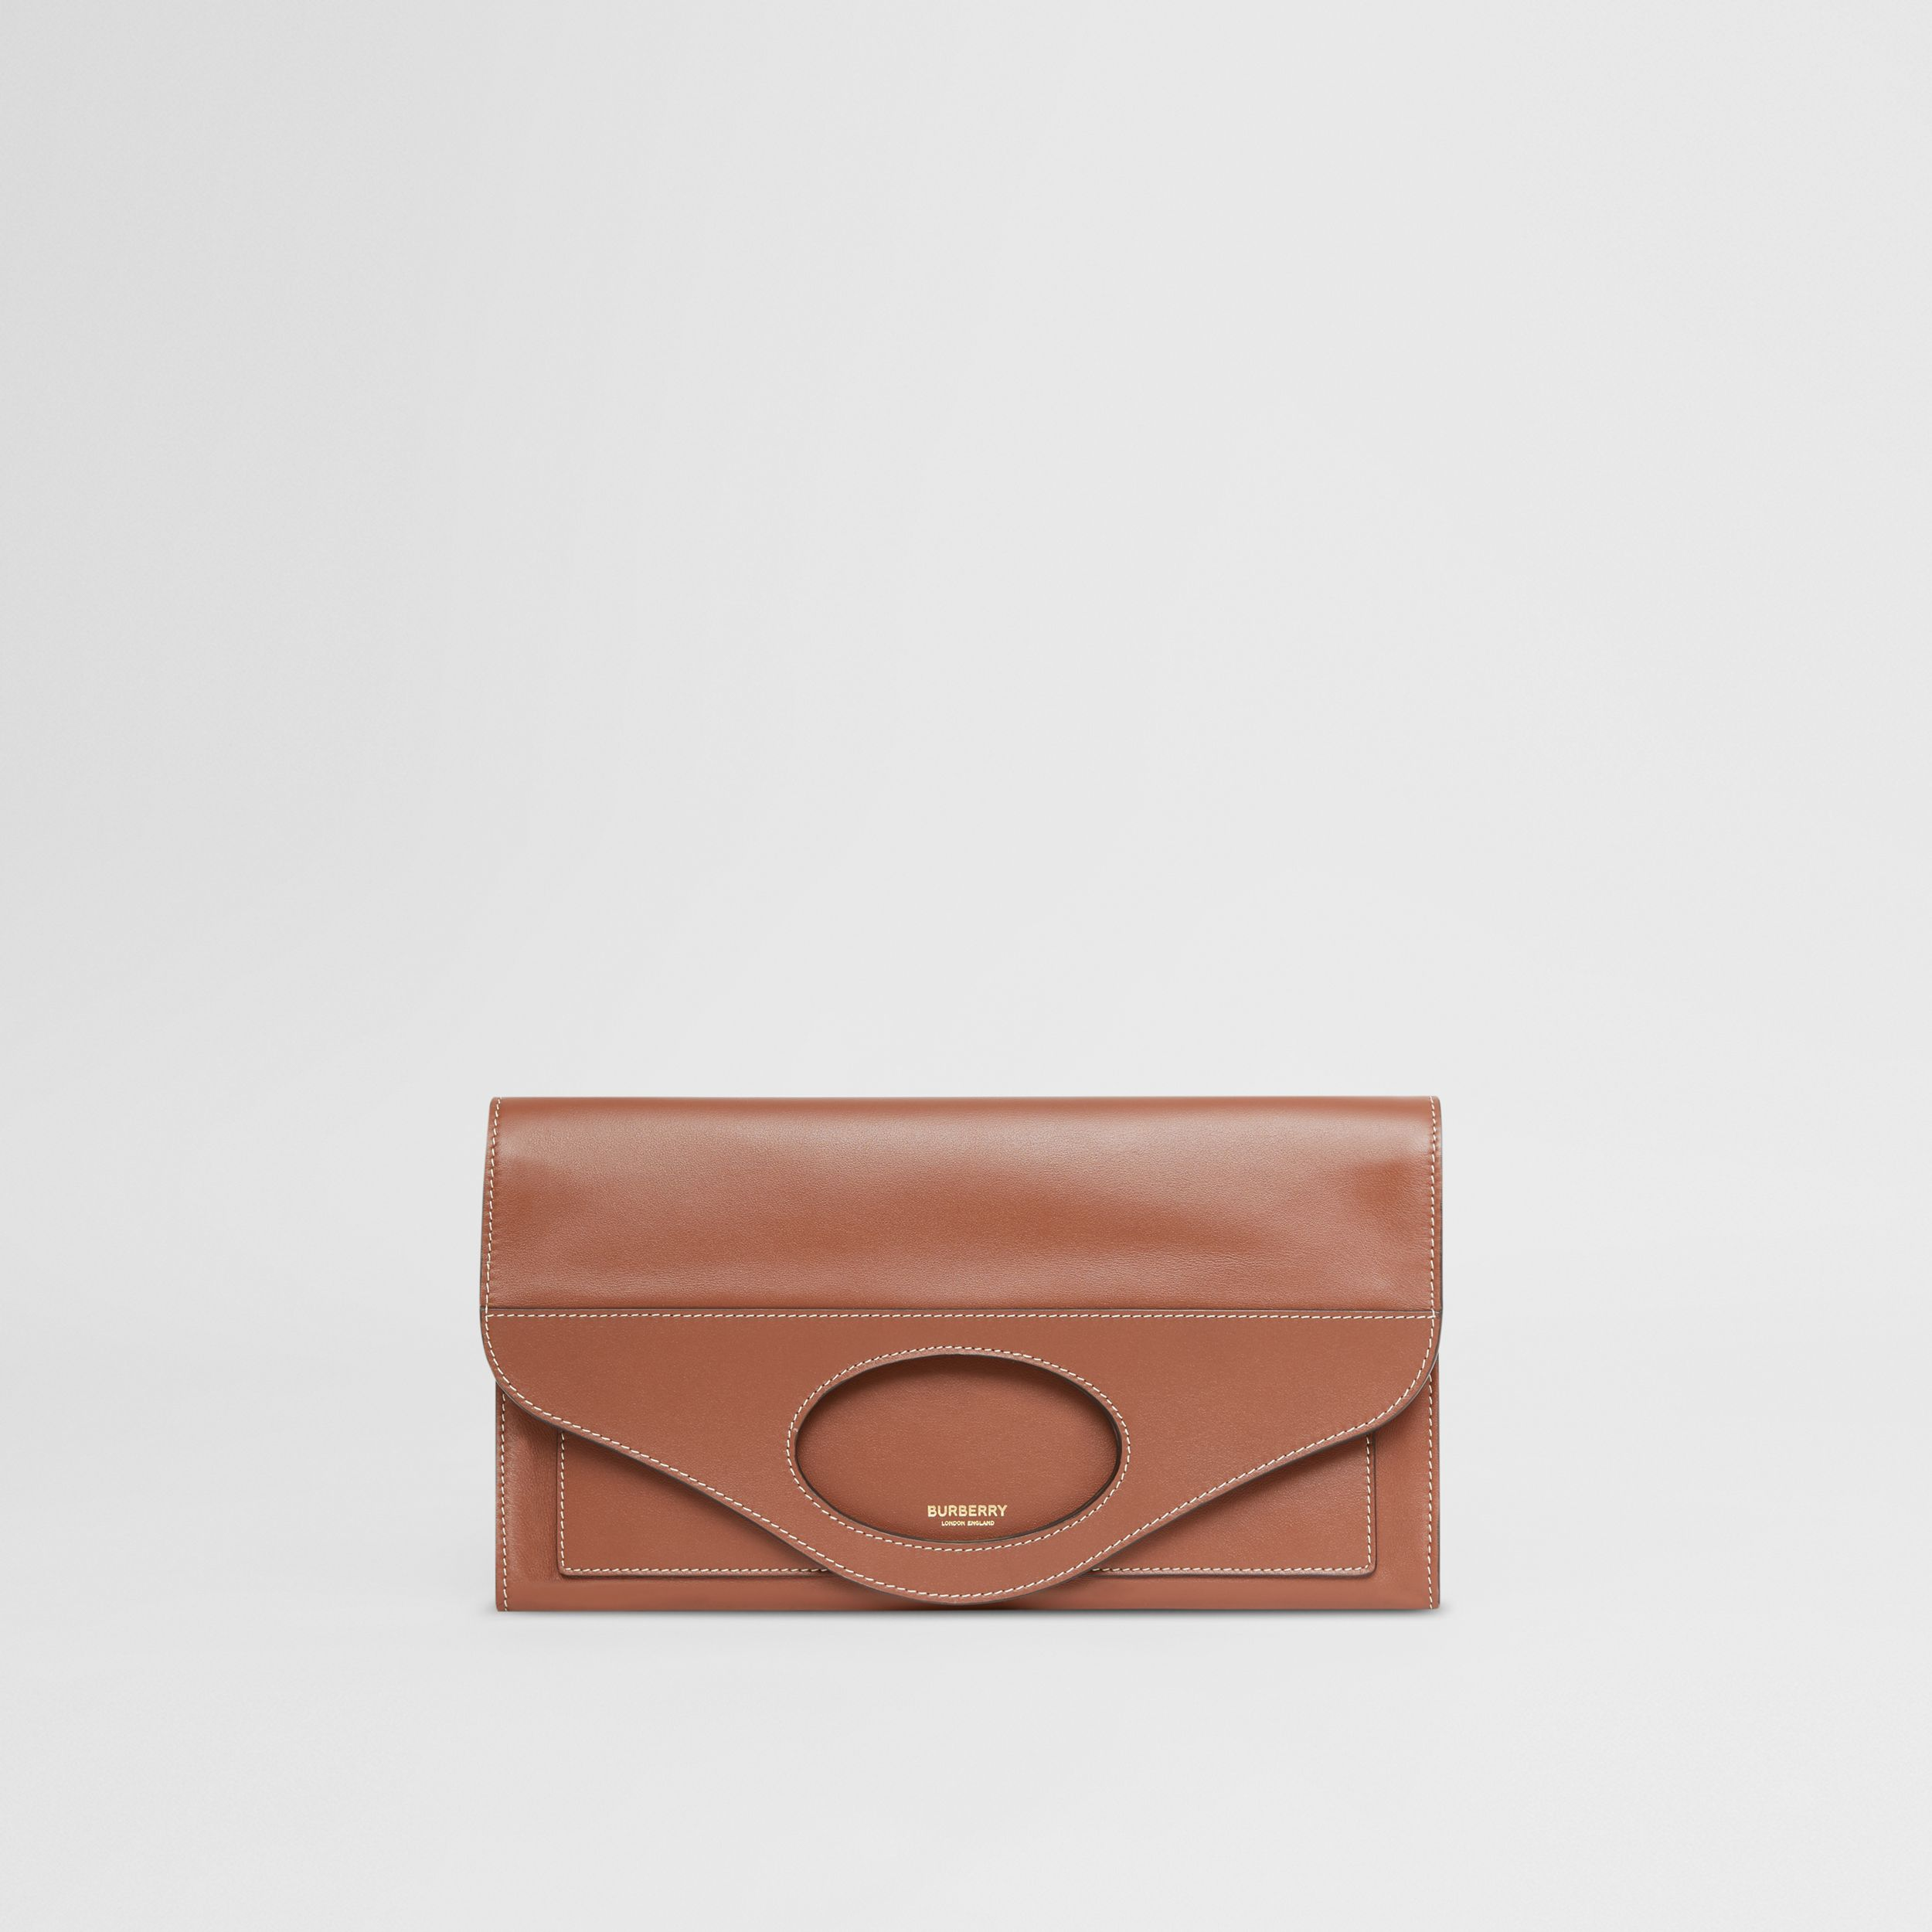 Small Topstitched Leather Pocket Clutch in Tan - Women | Burberry - 1